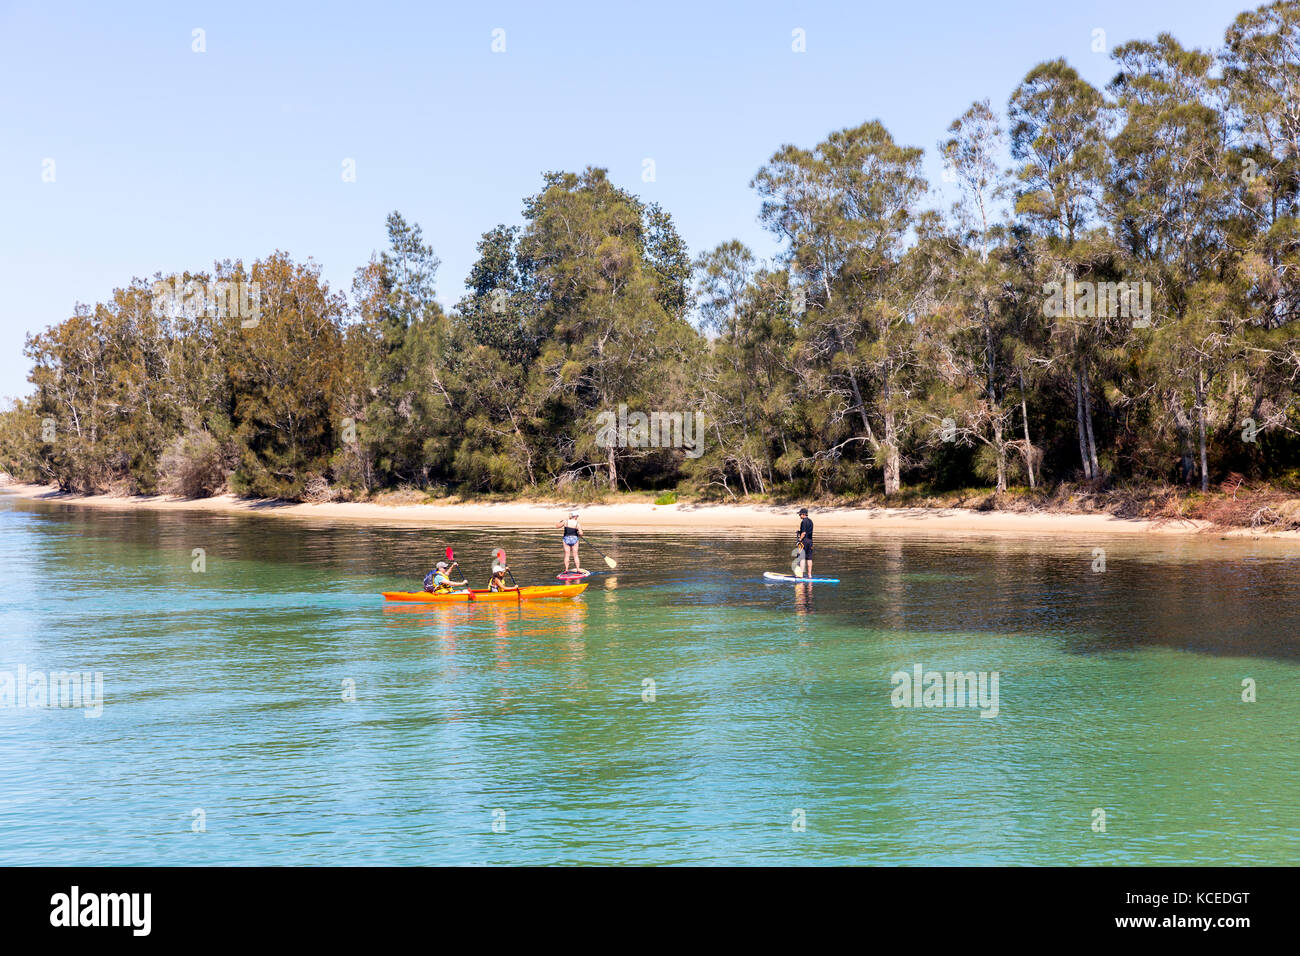 Paddleboarders and people in a kayak paddling on Wallis Lake at Forster on the mid north coast of New South Wales,Australia - Stock Image